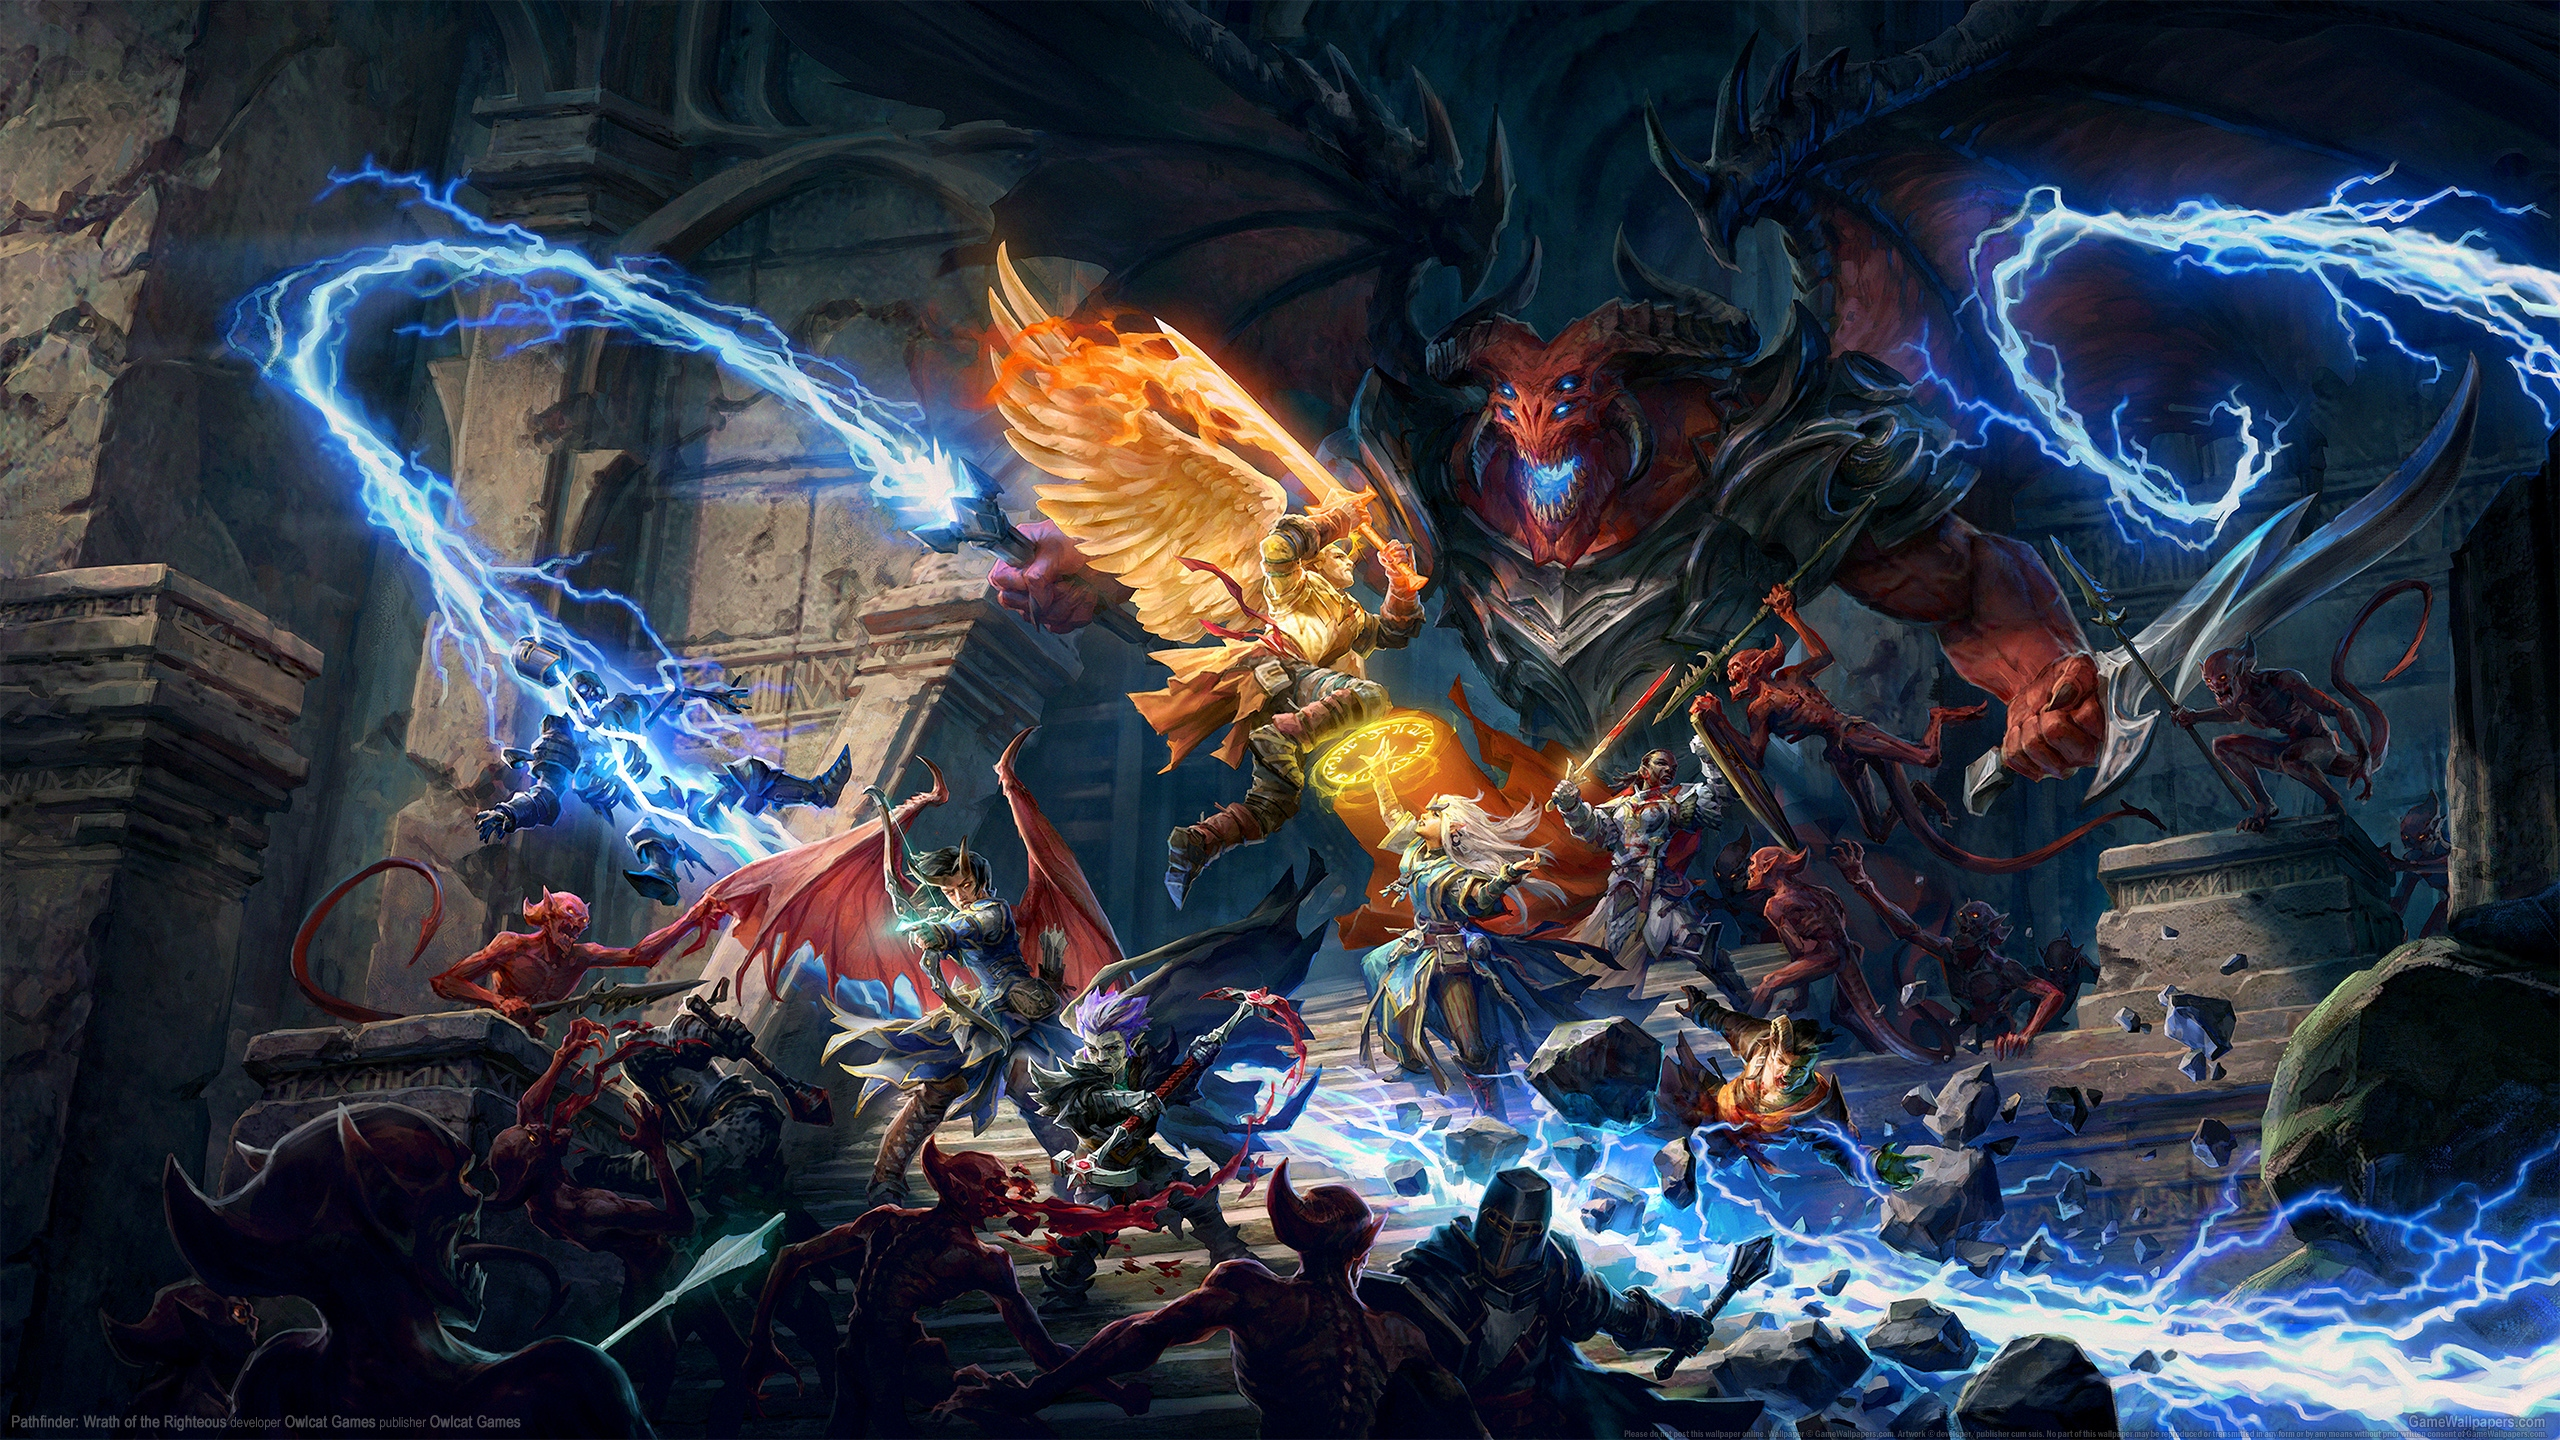 Pathfinder: Wrath of the Righteous 2560x1440 achtergrond 01